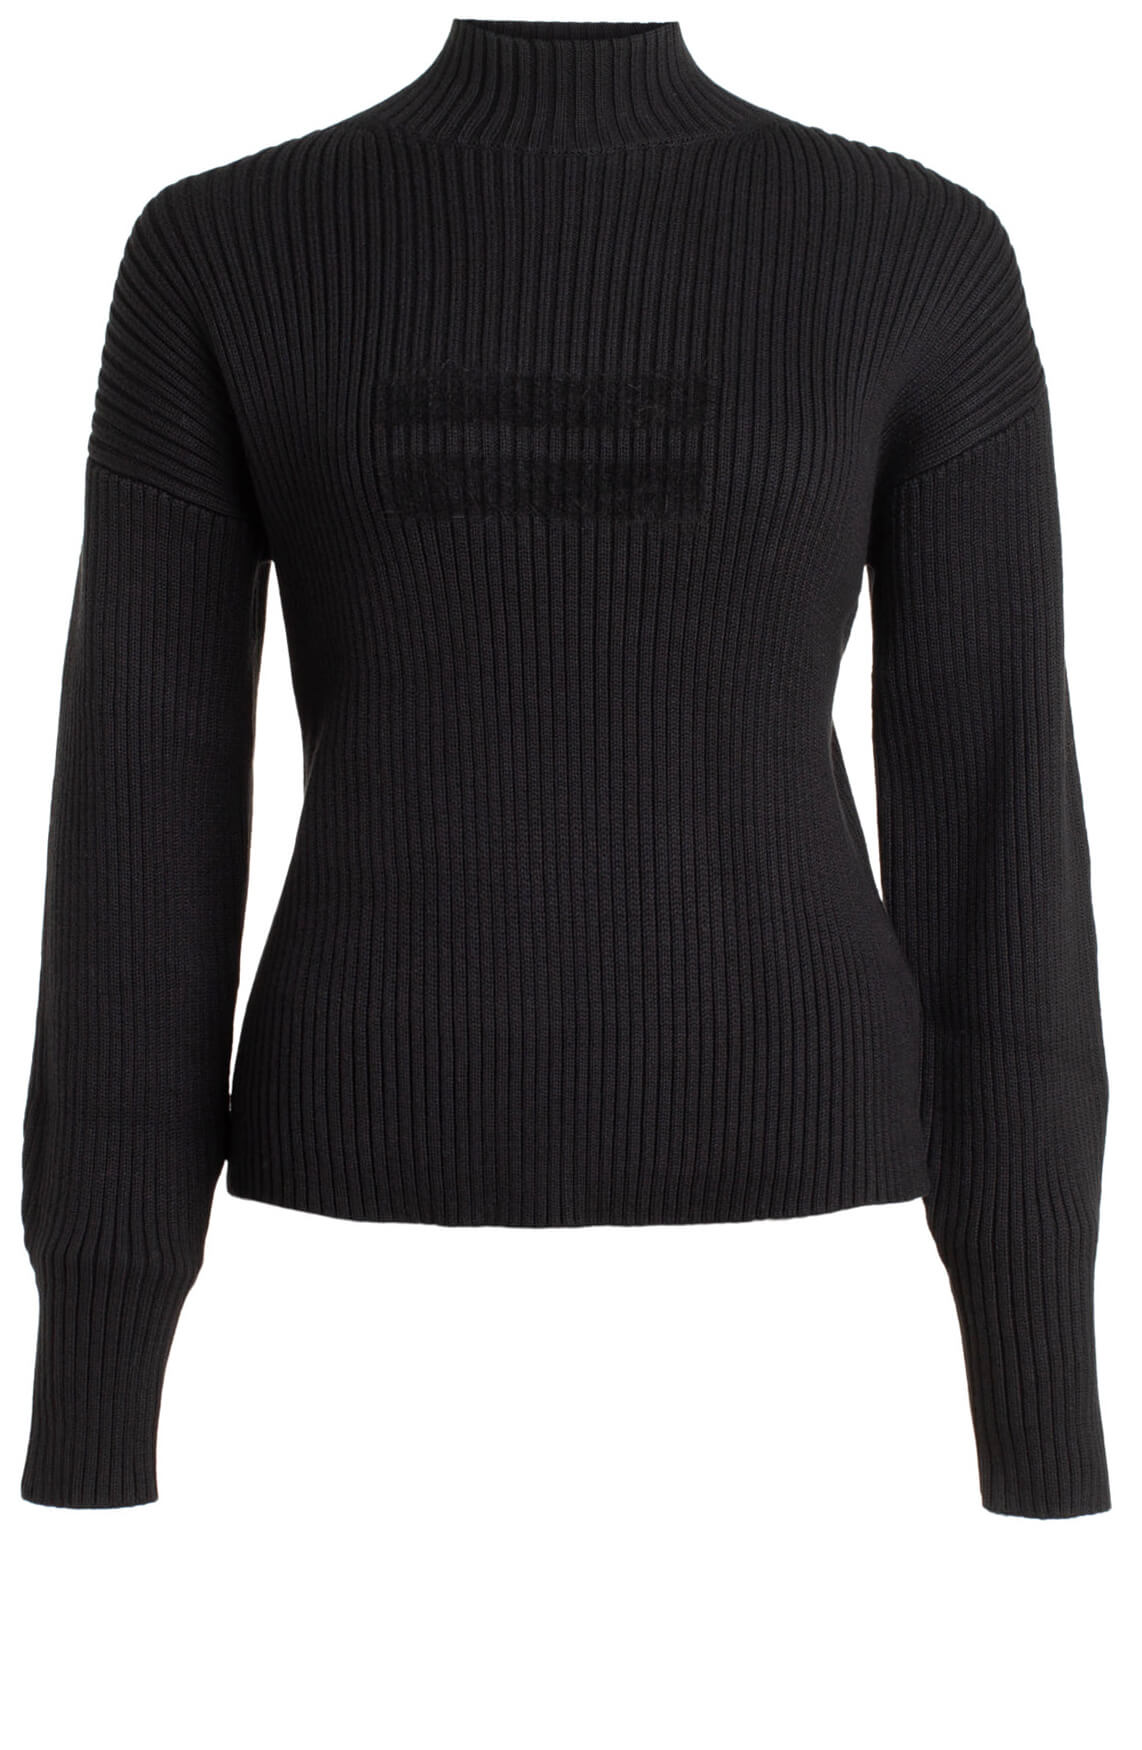 10 Days Dames Ribgebreide sweater zwart